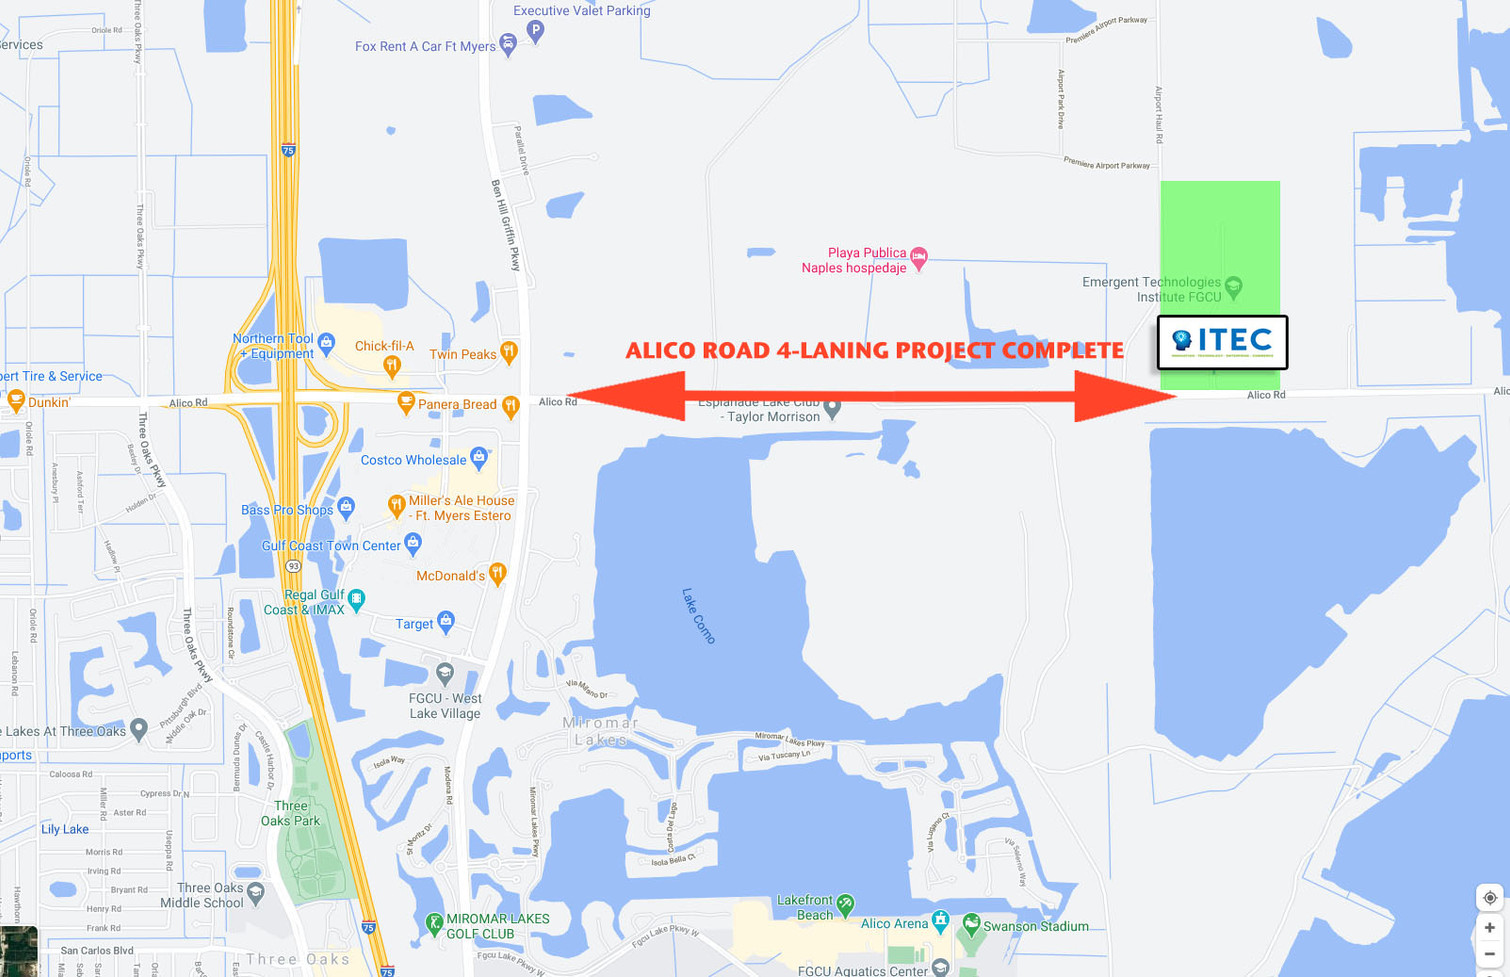 Alico Road widening